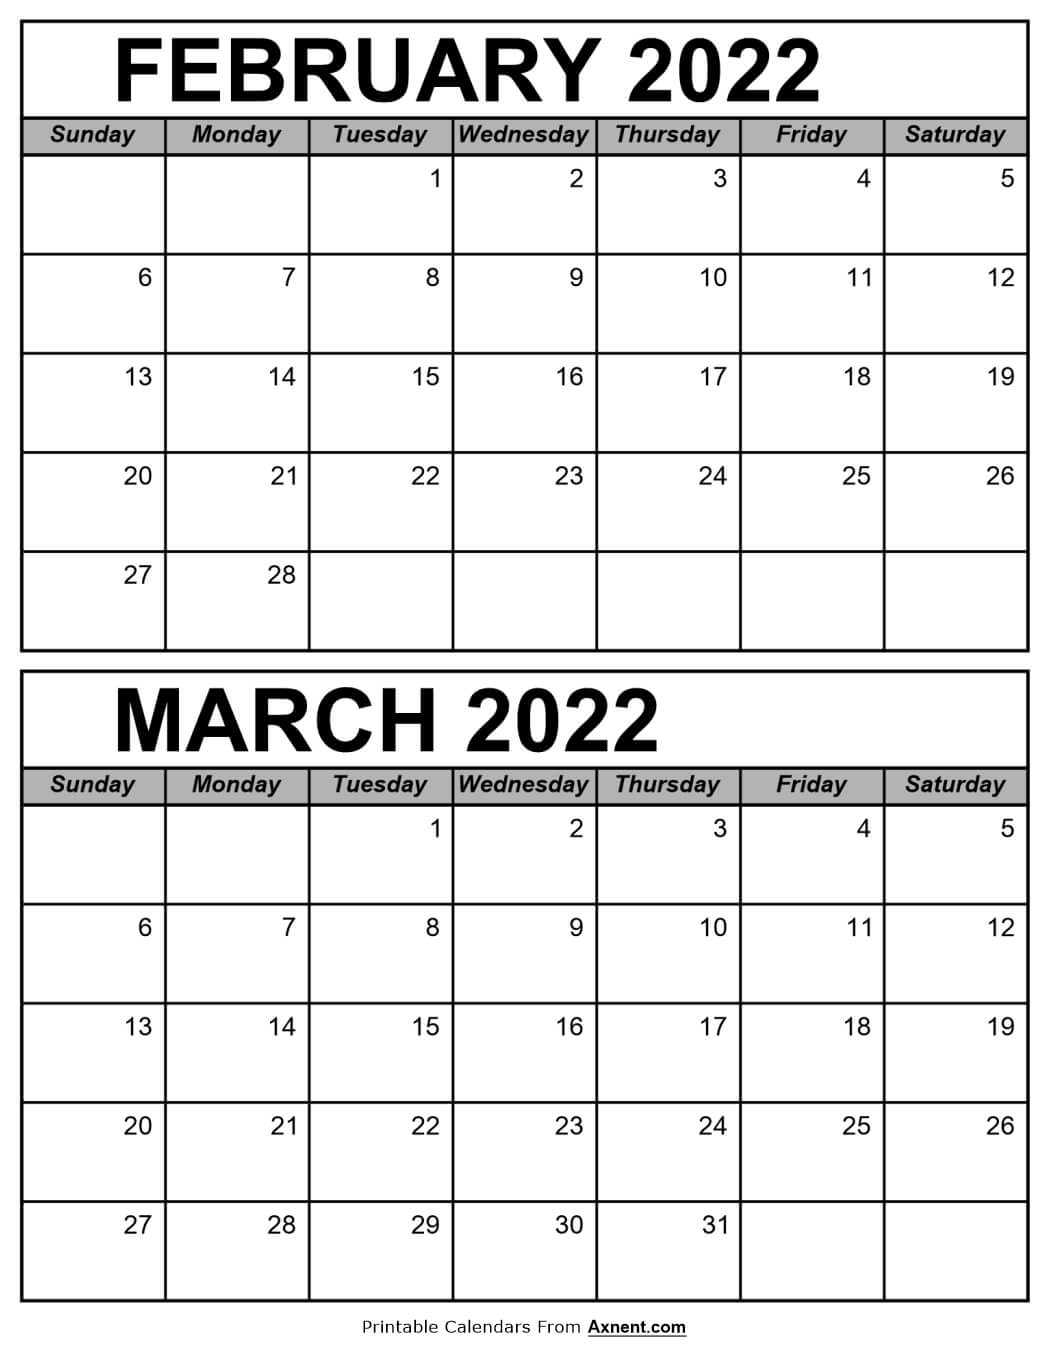 Calendar February and March 2022